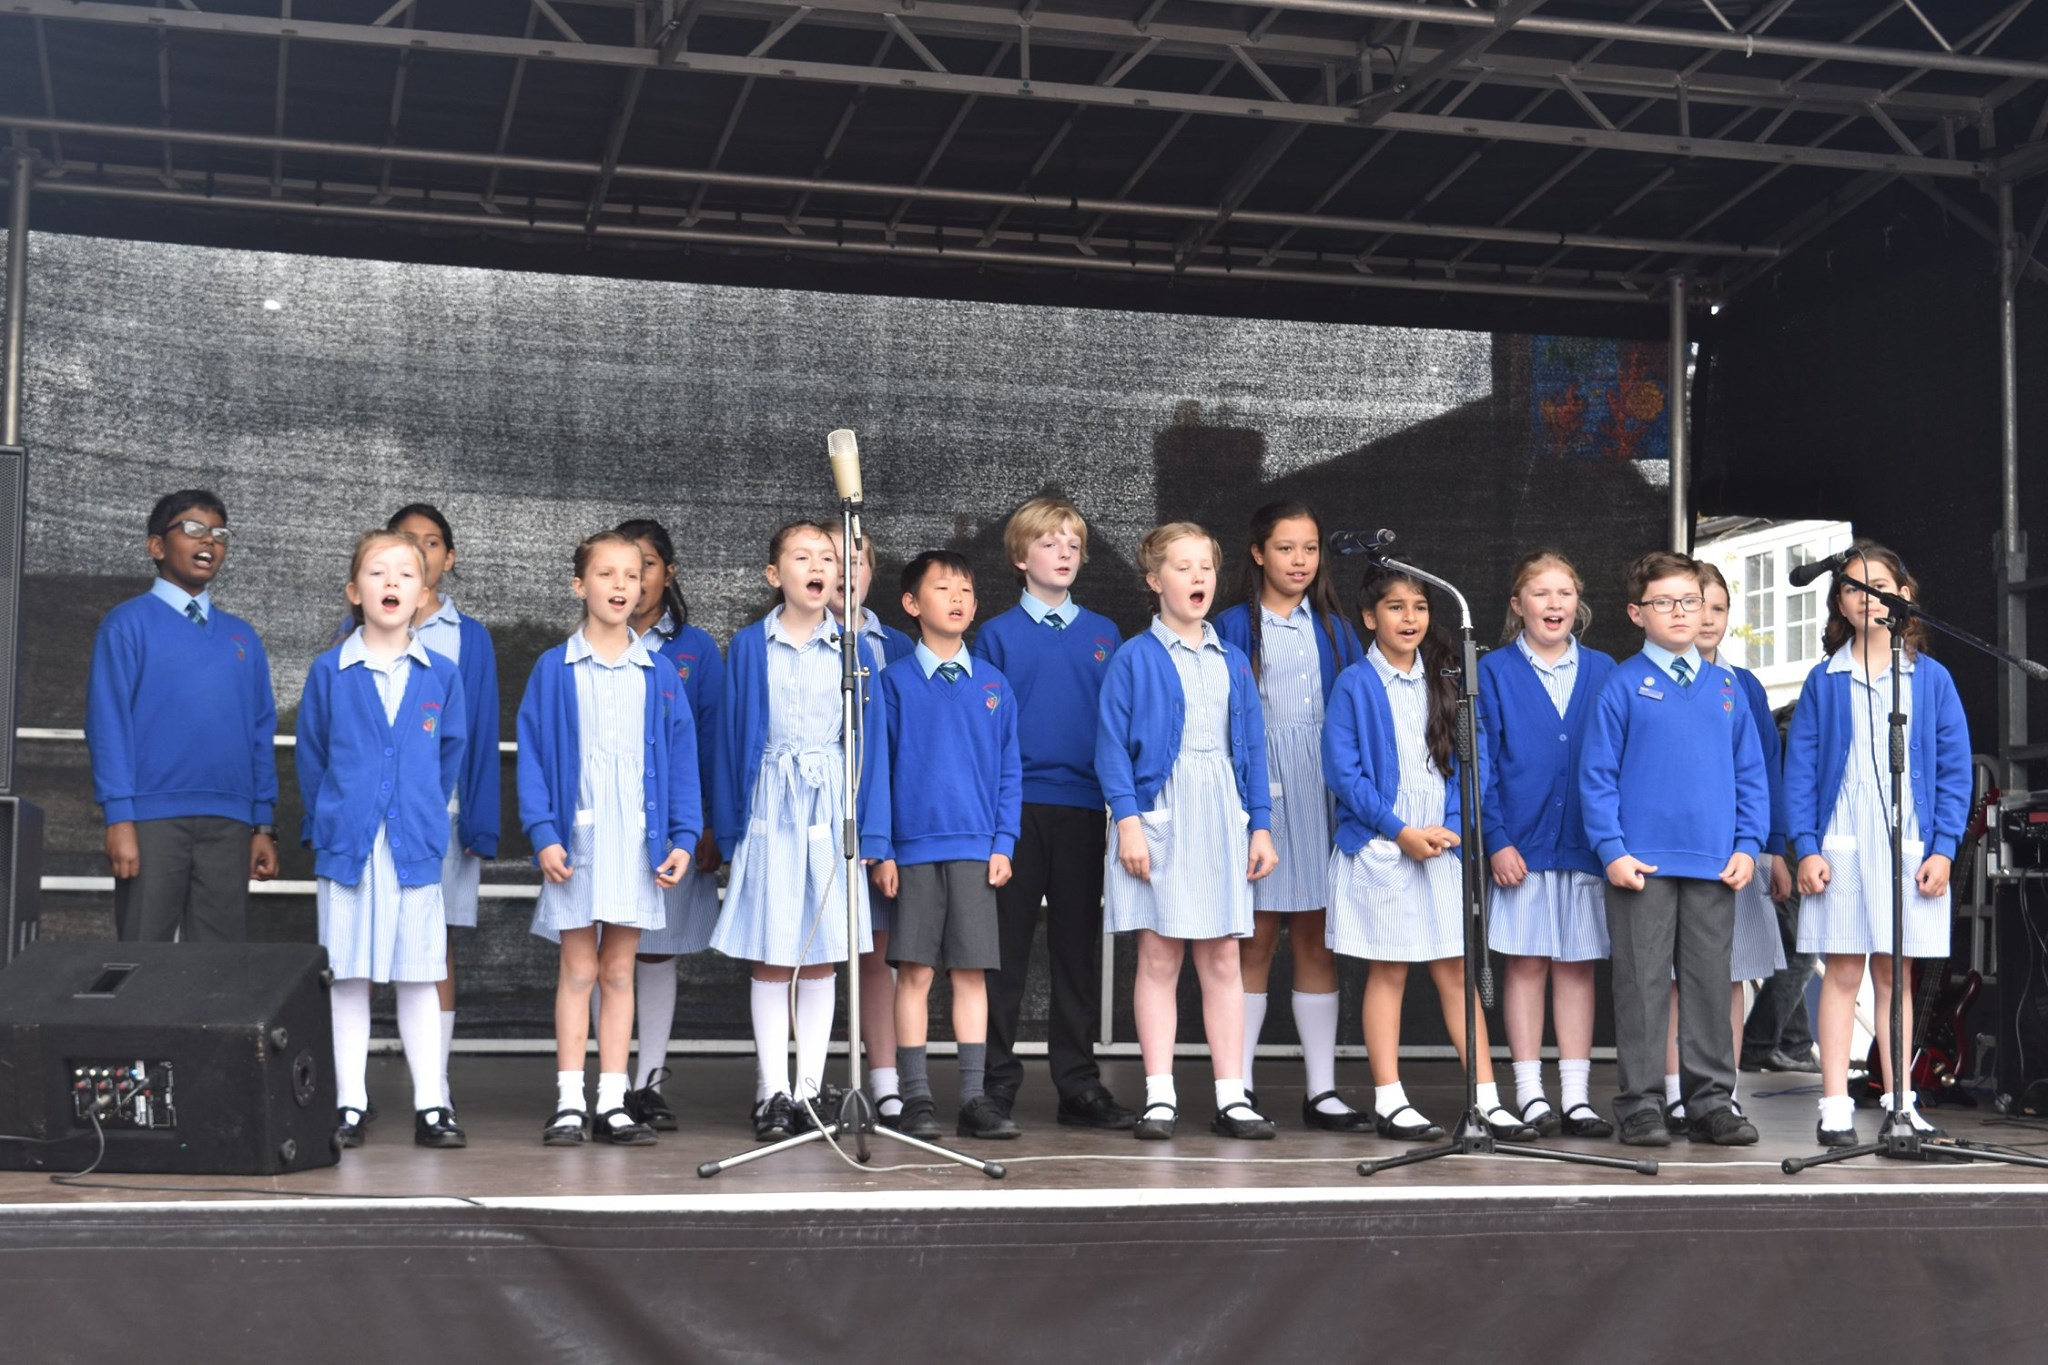 Choir Takes Centre Stage at Cricklade Festival